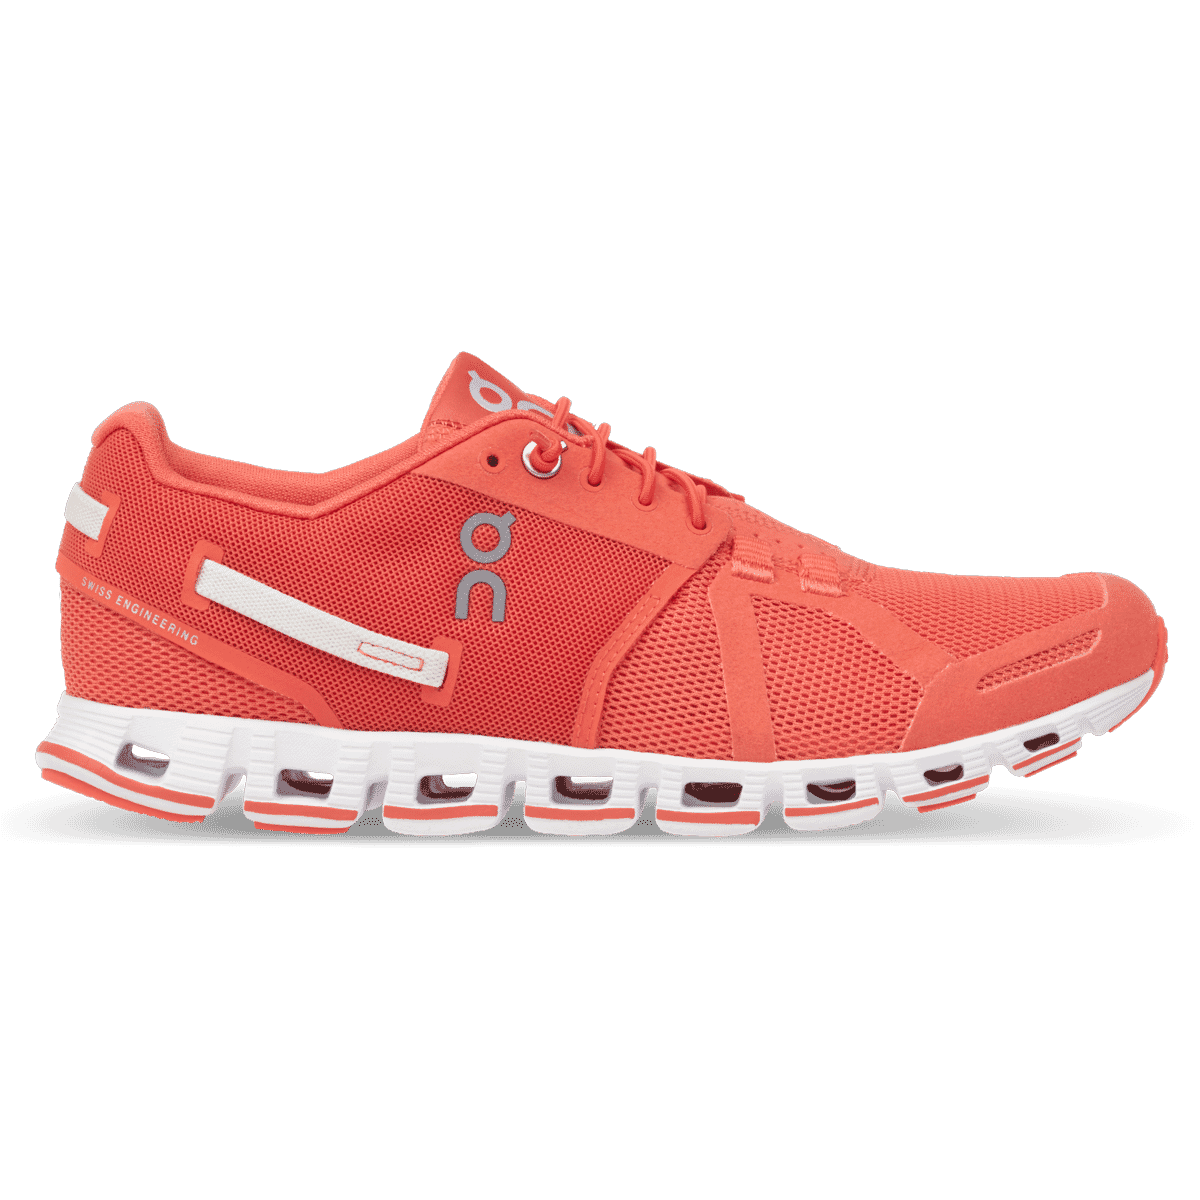 On World's Shoe Lightest Cushioned Running CloudThe Fully 34RqSjLc5A